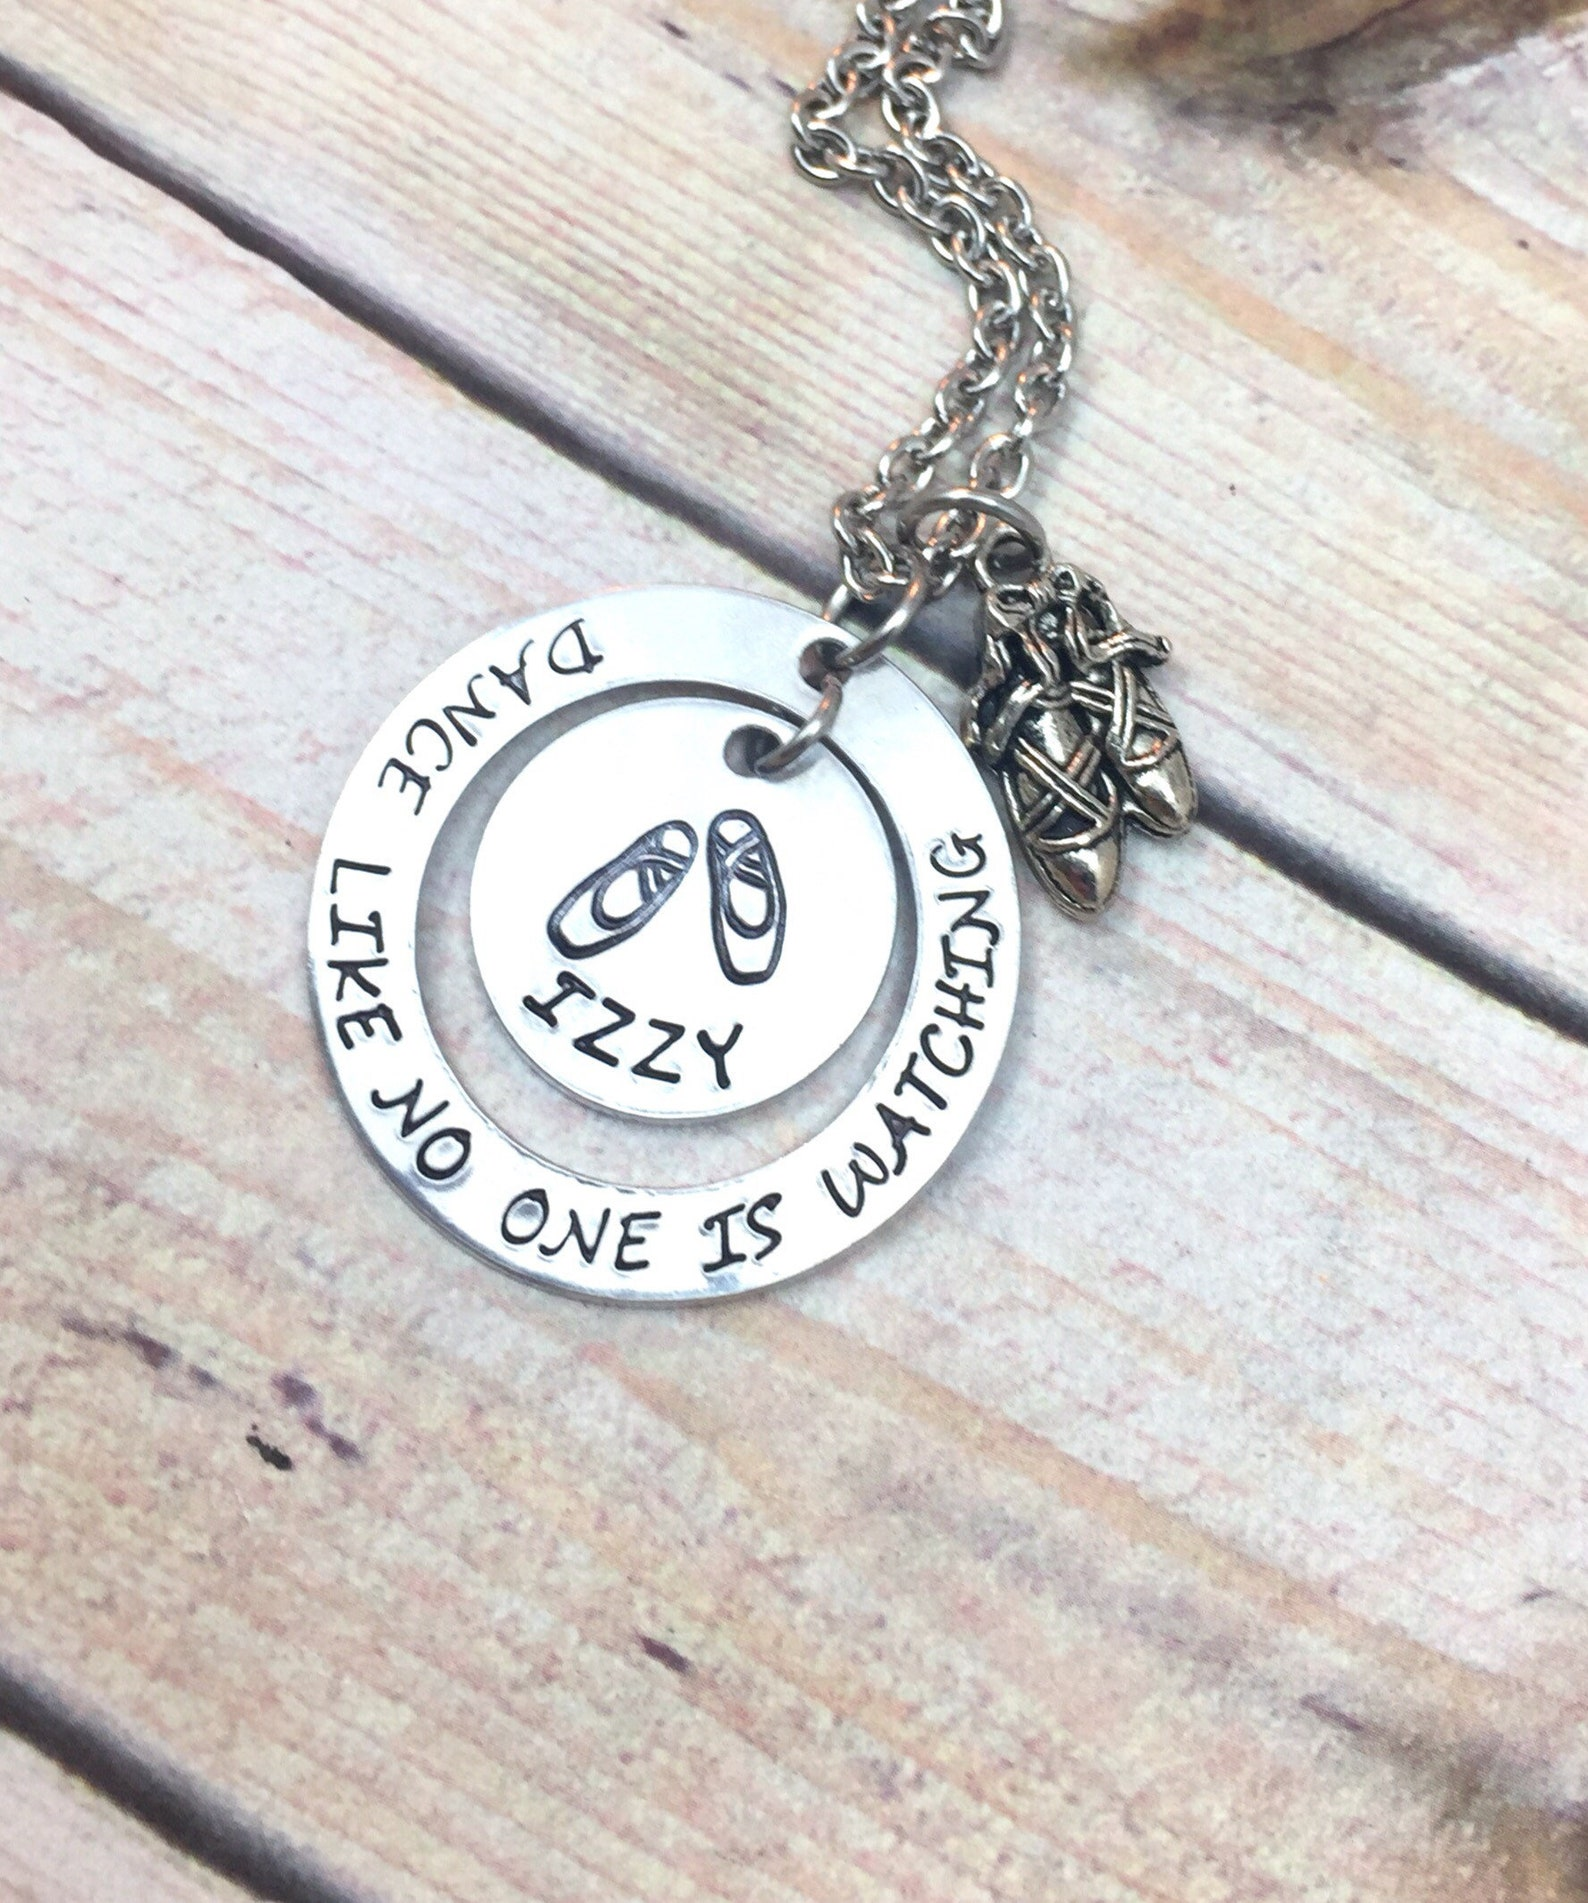 dance necklace, dance like no one is watching, ballet slippers necklace, gift for her